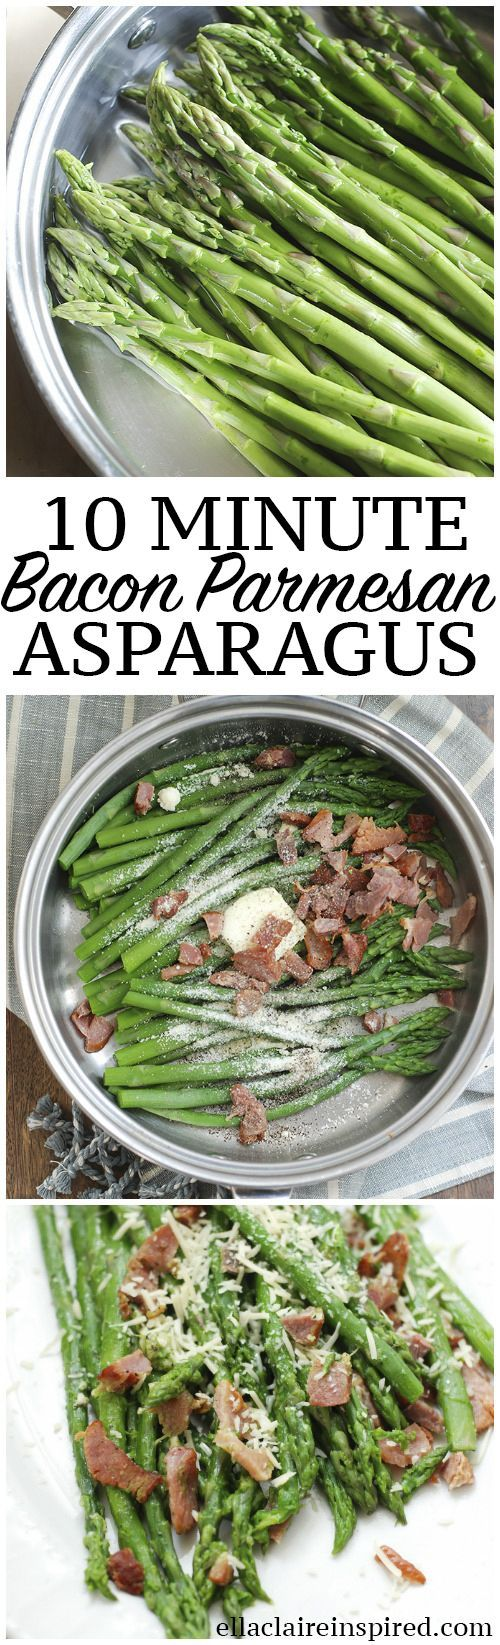 No more mushy flavorless asparagus! This easy 10 minute bacon and parmesan asparagus is so delicious! A total crowd pleaser!